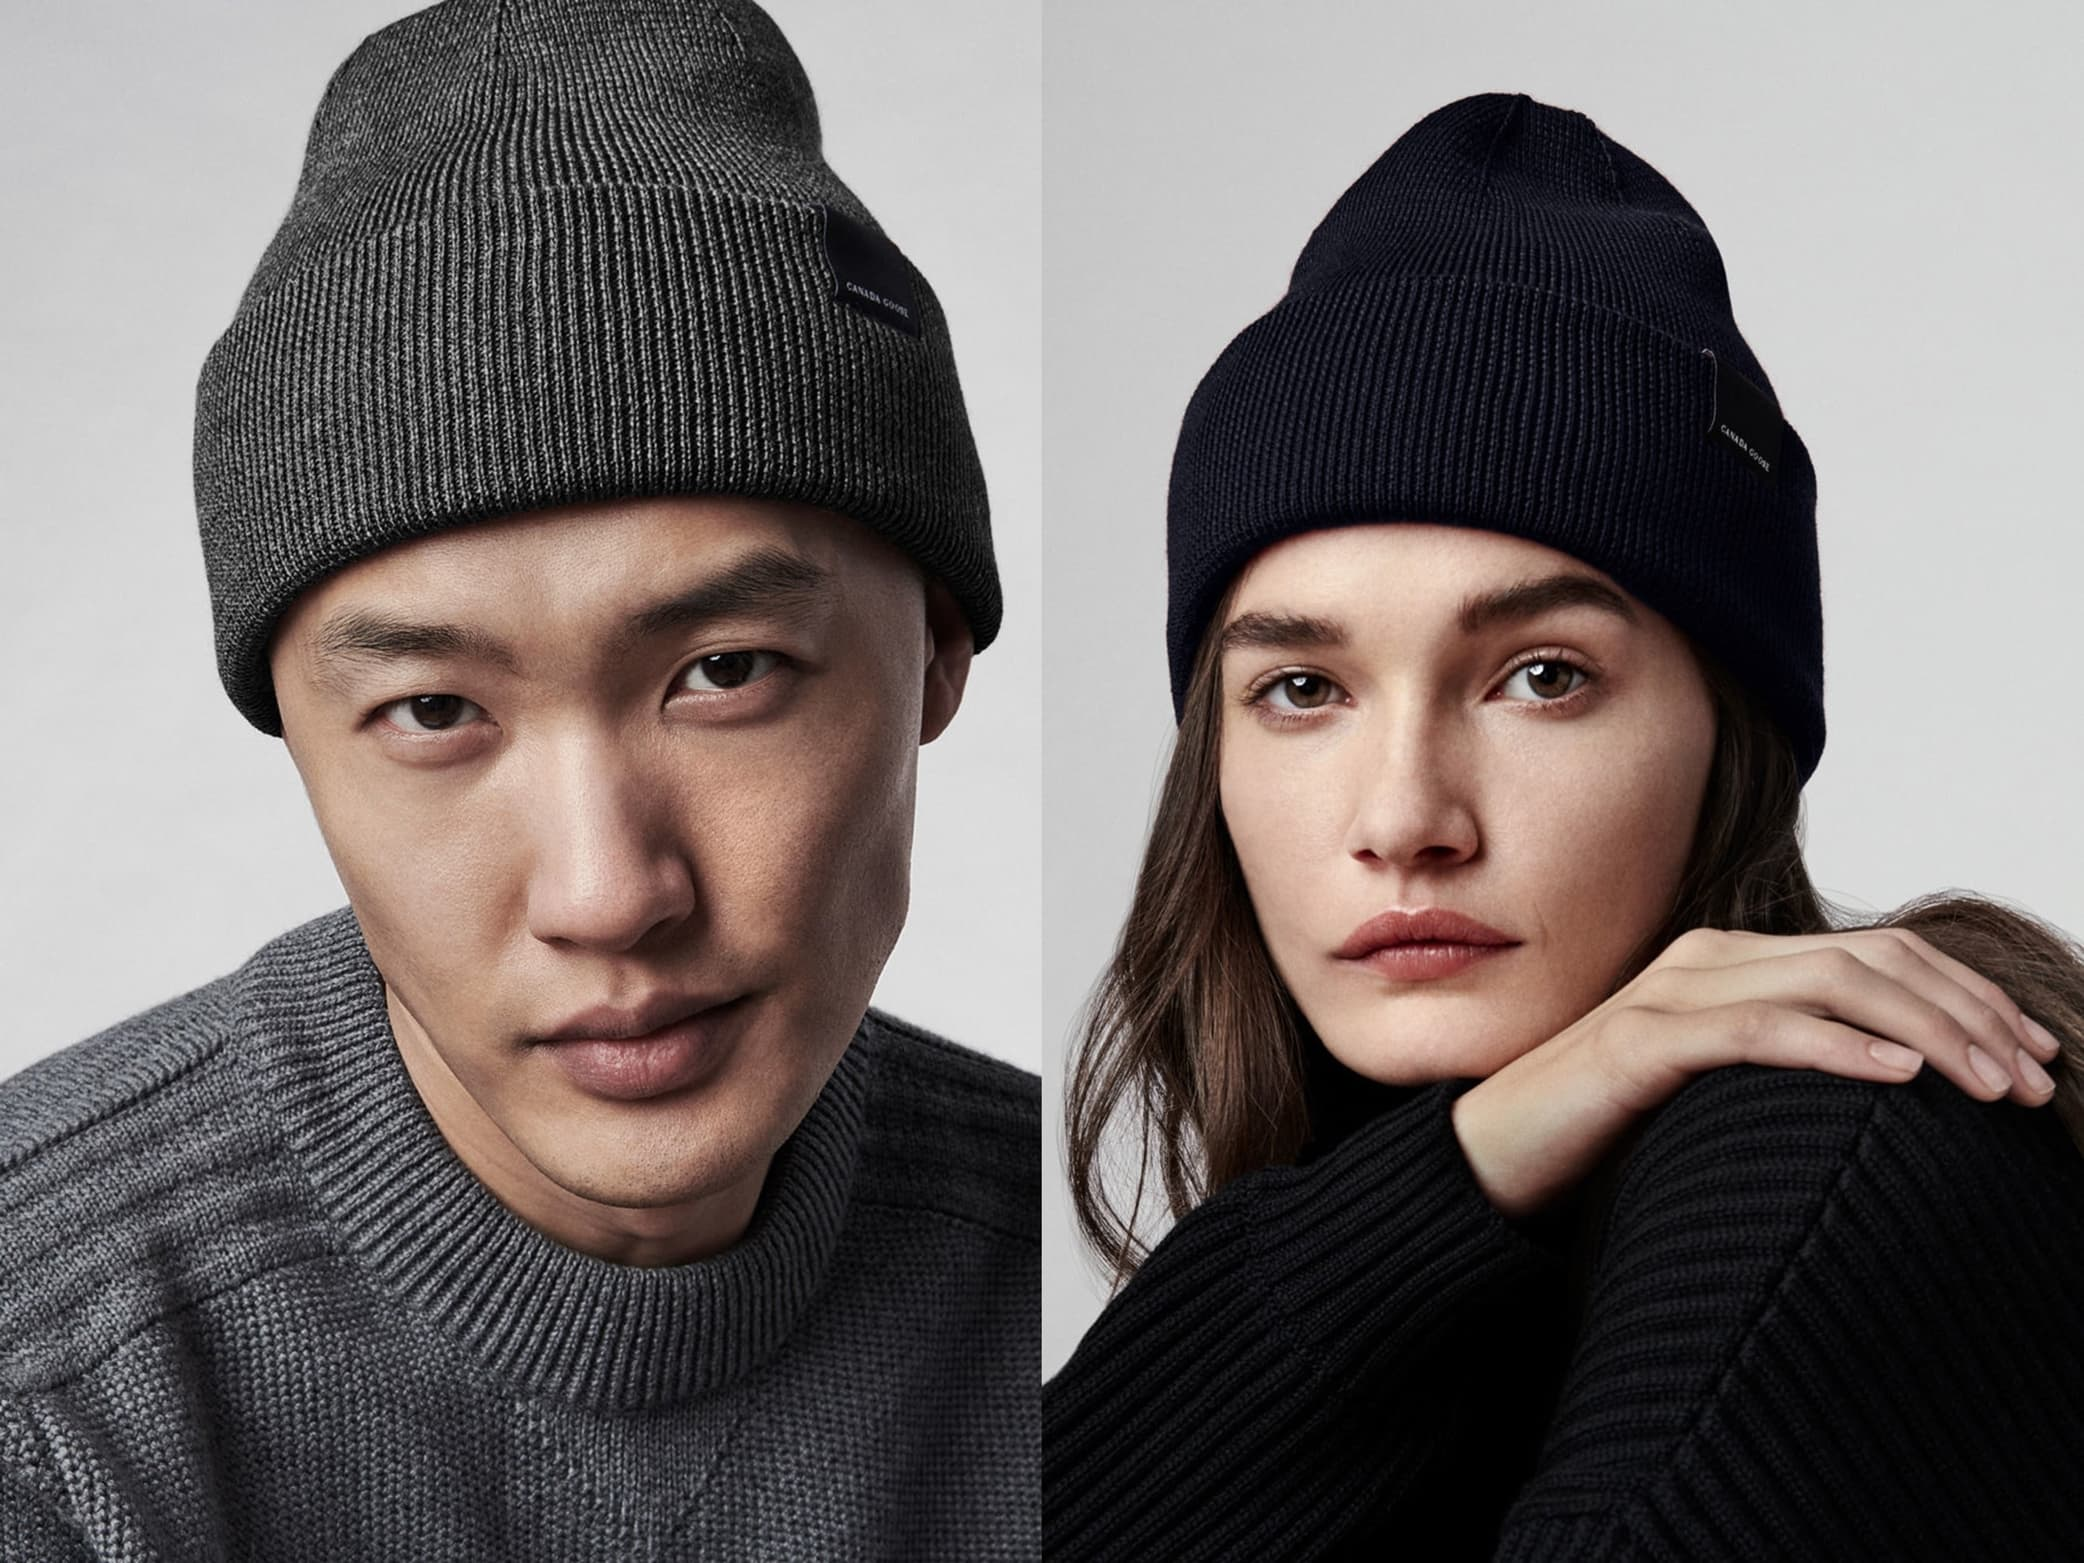 Supremely soft merino wool means warmth and comfort in a classic toque lined in a soft fabric to be even cozier